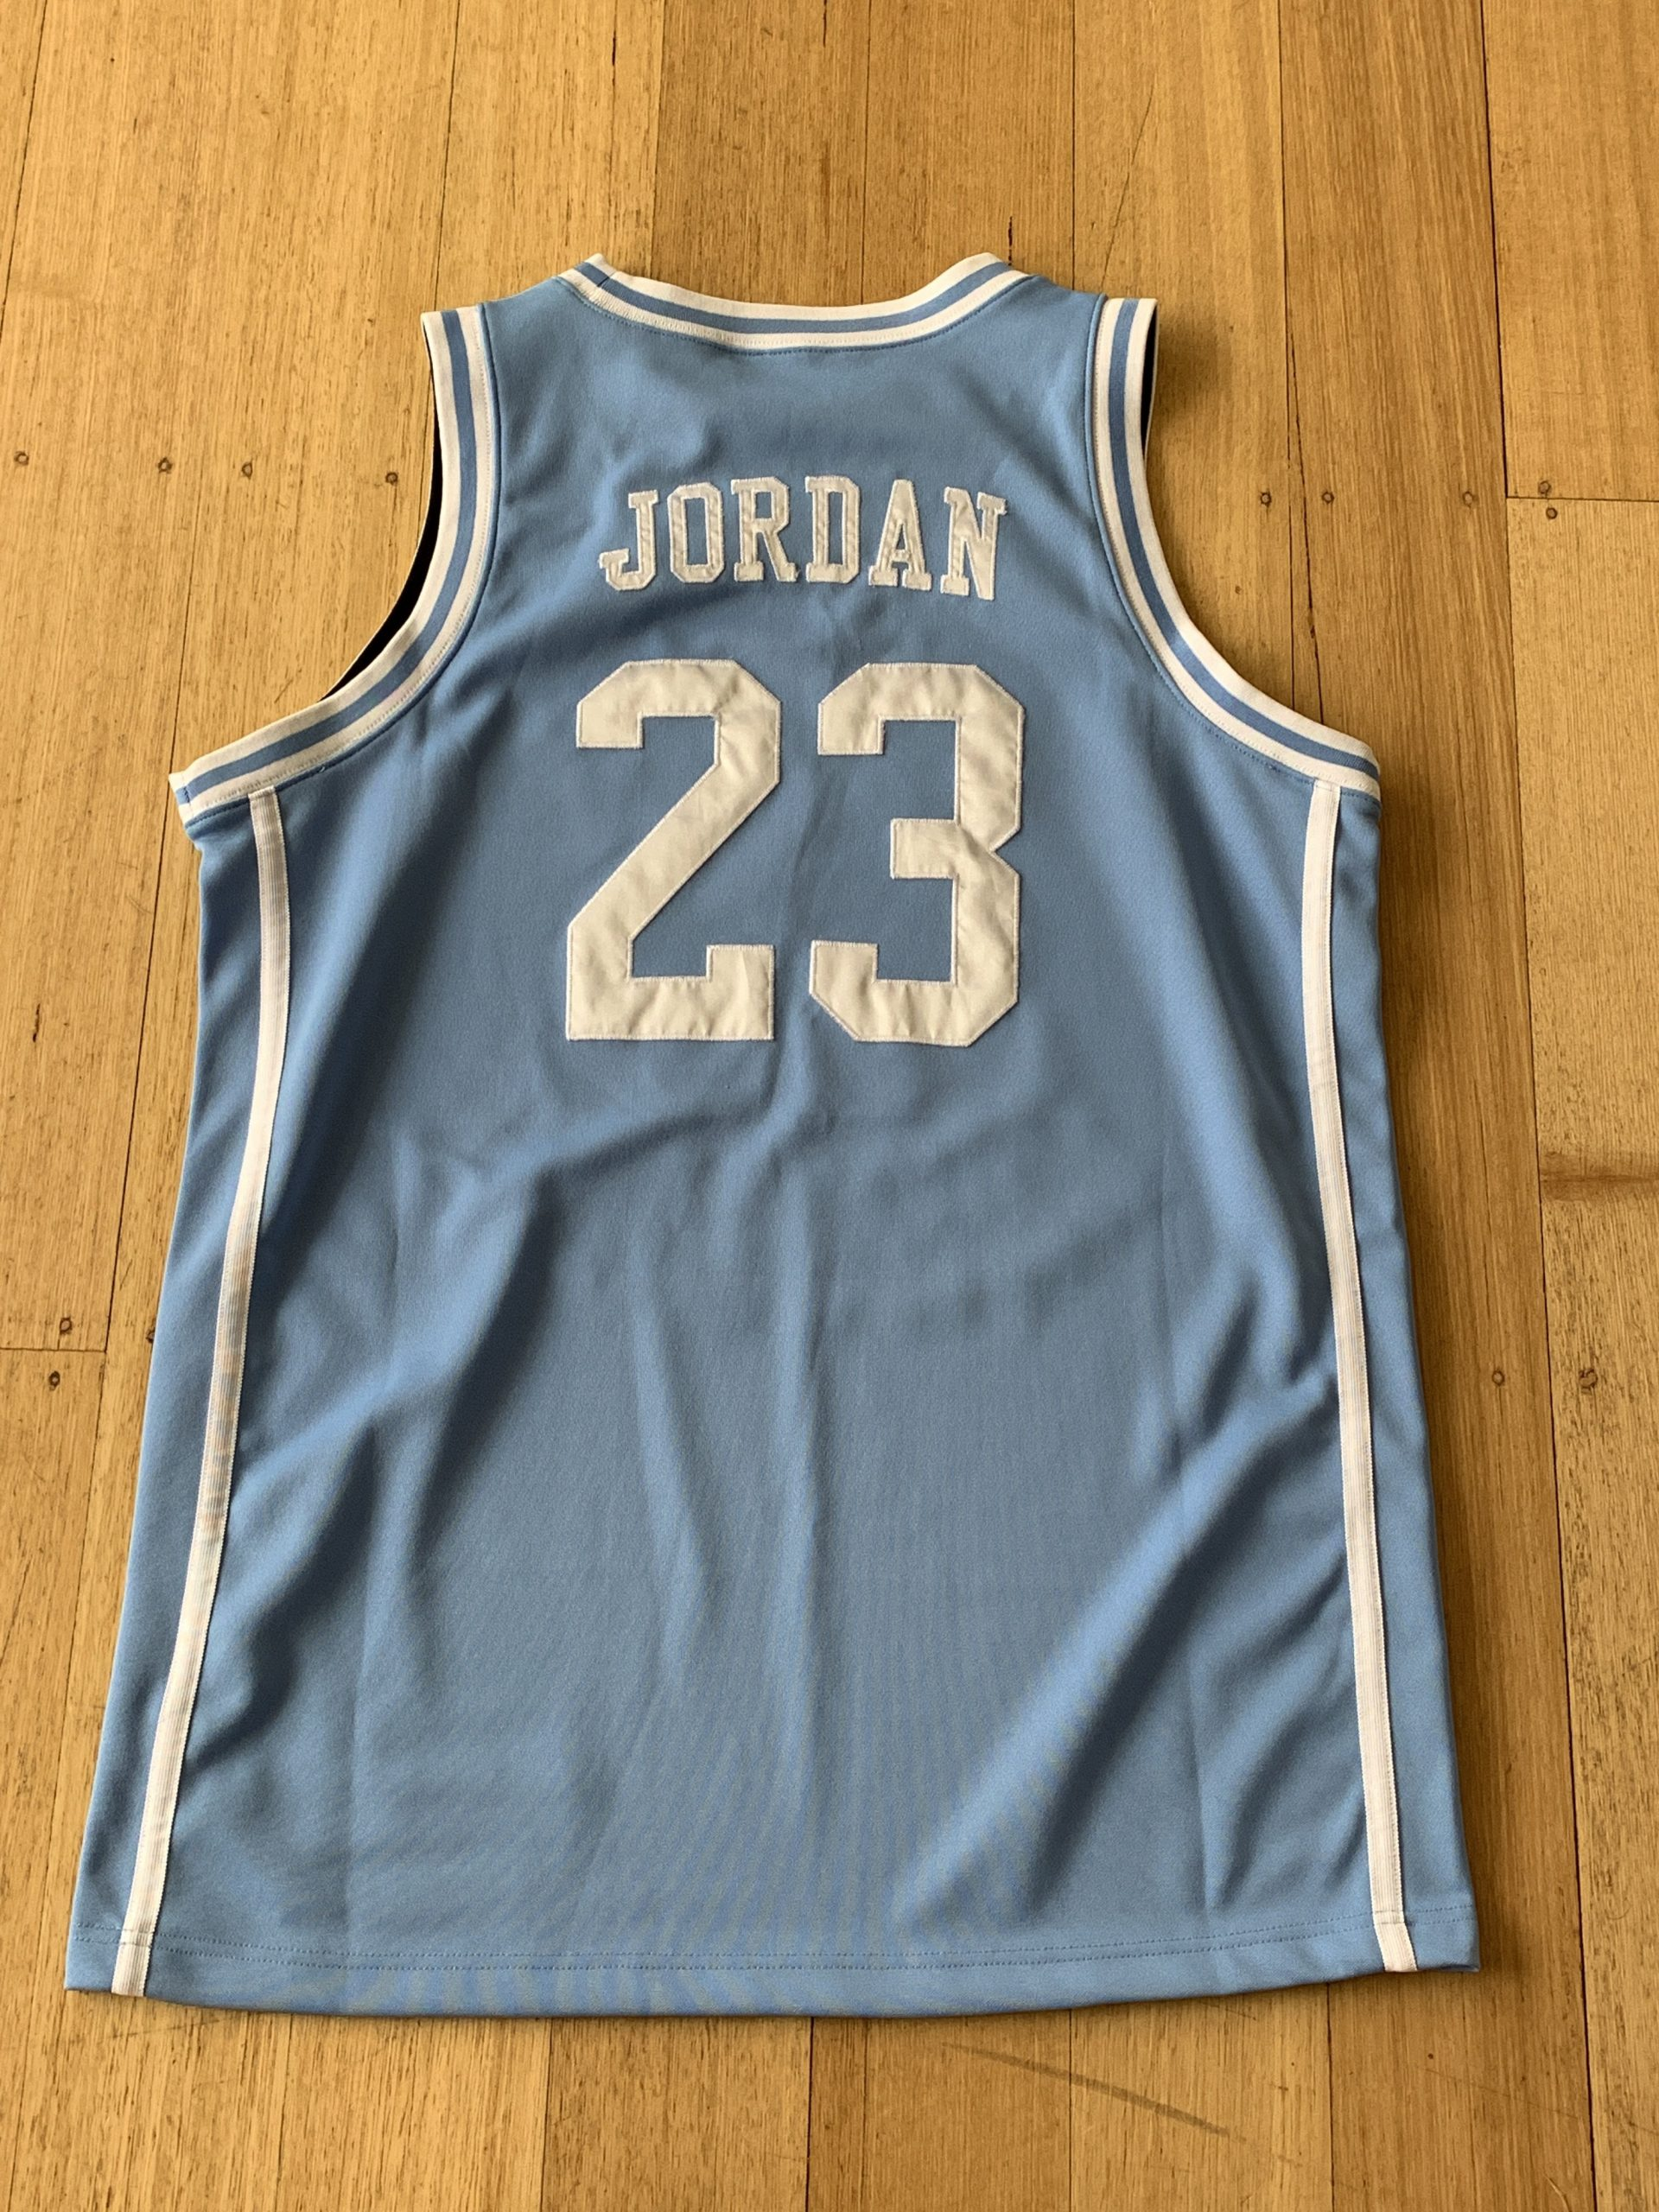 discount authentic jerseys